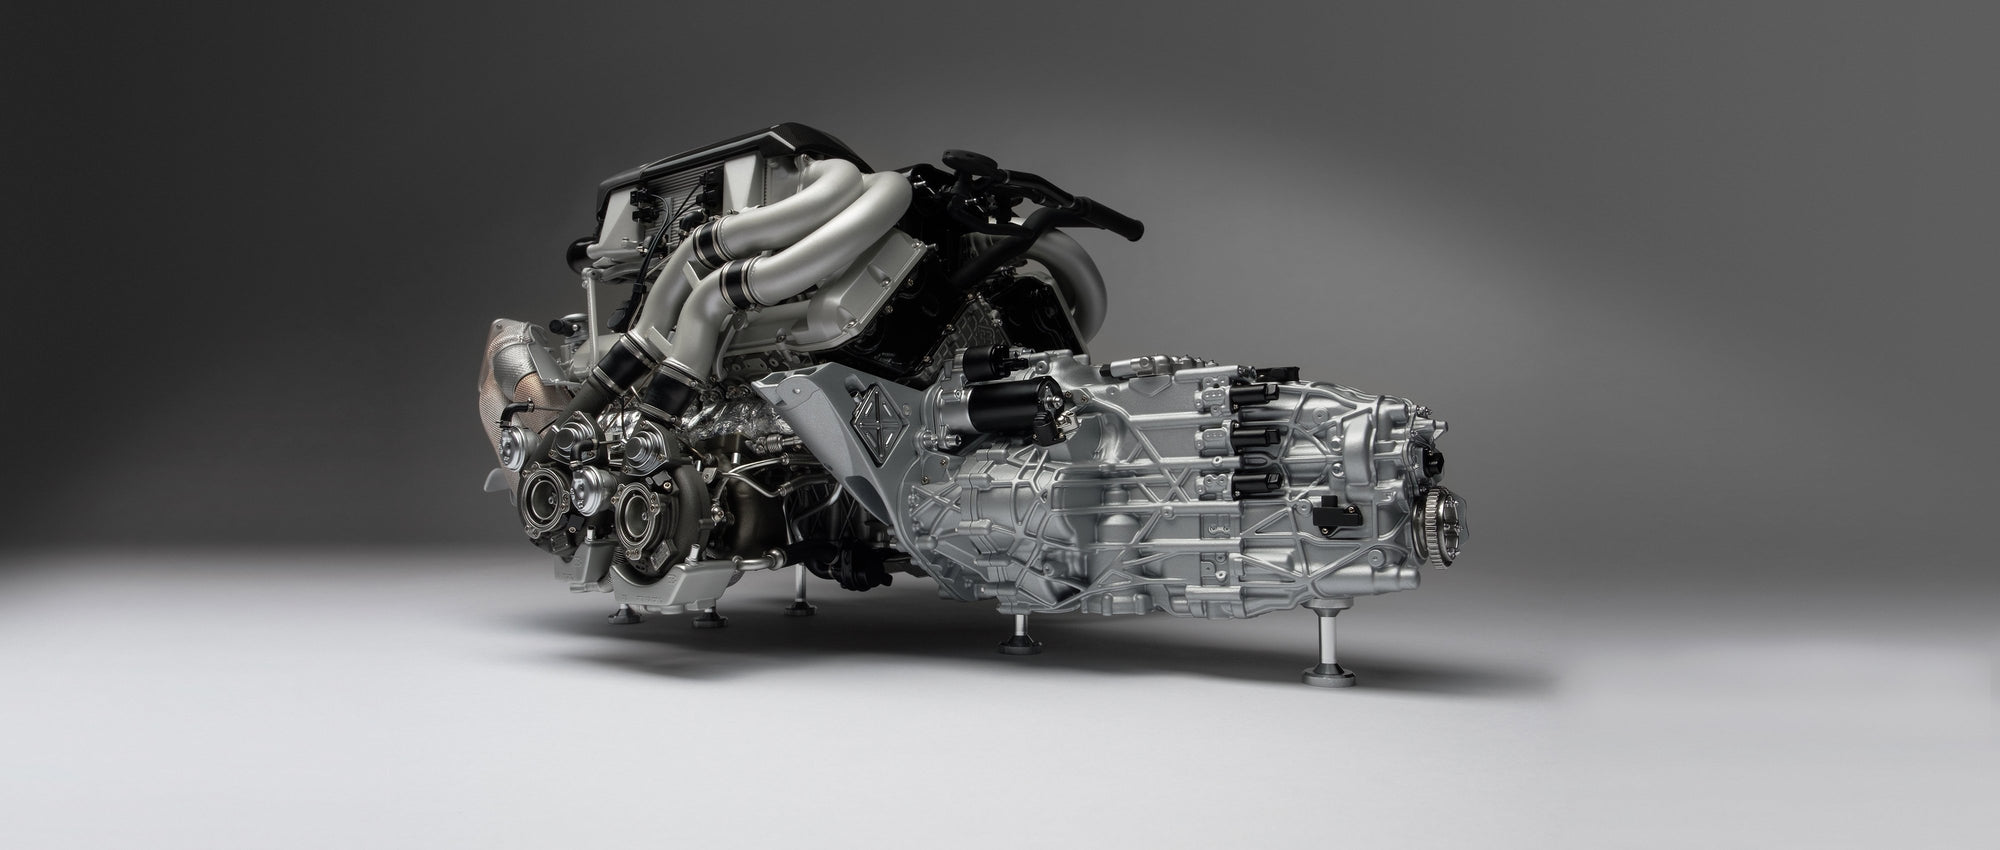 Bugatti Chiron Engine and Gearbox